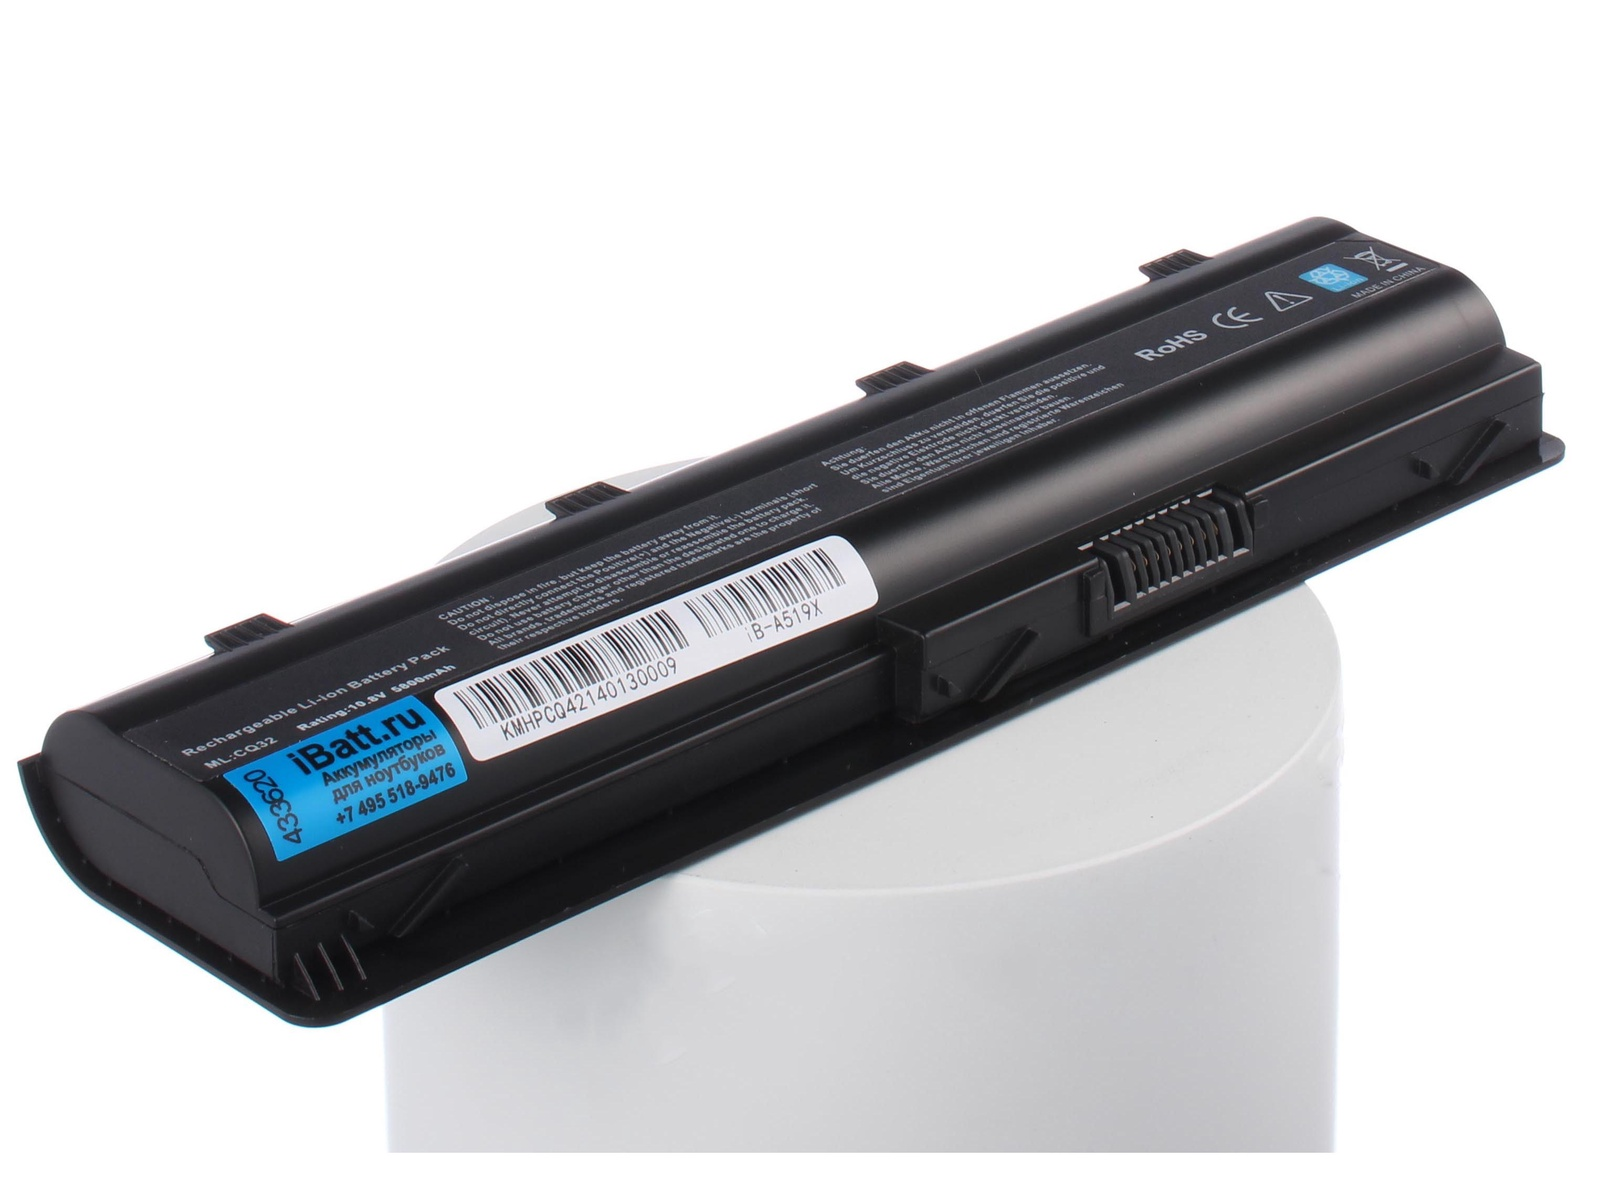 Аккумулятор для ноутбука iBatt для HP-Compaq Presario CQ56-110US, Presario CQ56-172SR, Presario CQ56-173ER, Presario CQ57-376ER, Presario CQ57-381ER, Presario CQ58-152SR, Presario CQ62-a20ER, 2000-2d01ER, 2000-2d85SR working perfectly 646177 001 motherboard for hp 2000 compaq presario cq57 cq43 notebook pc mainboard